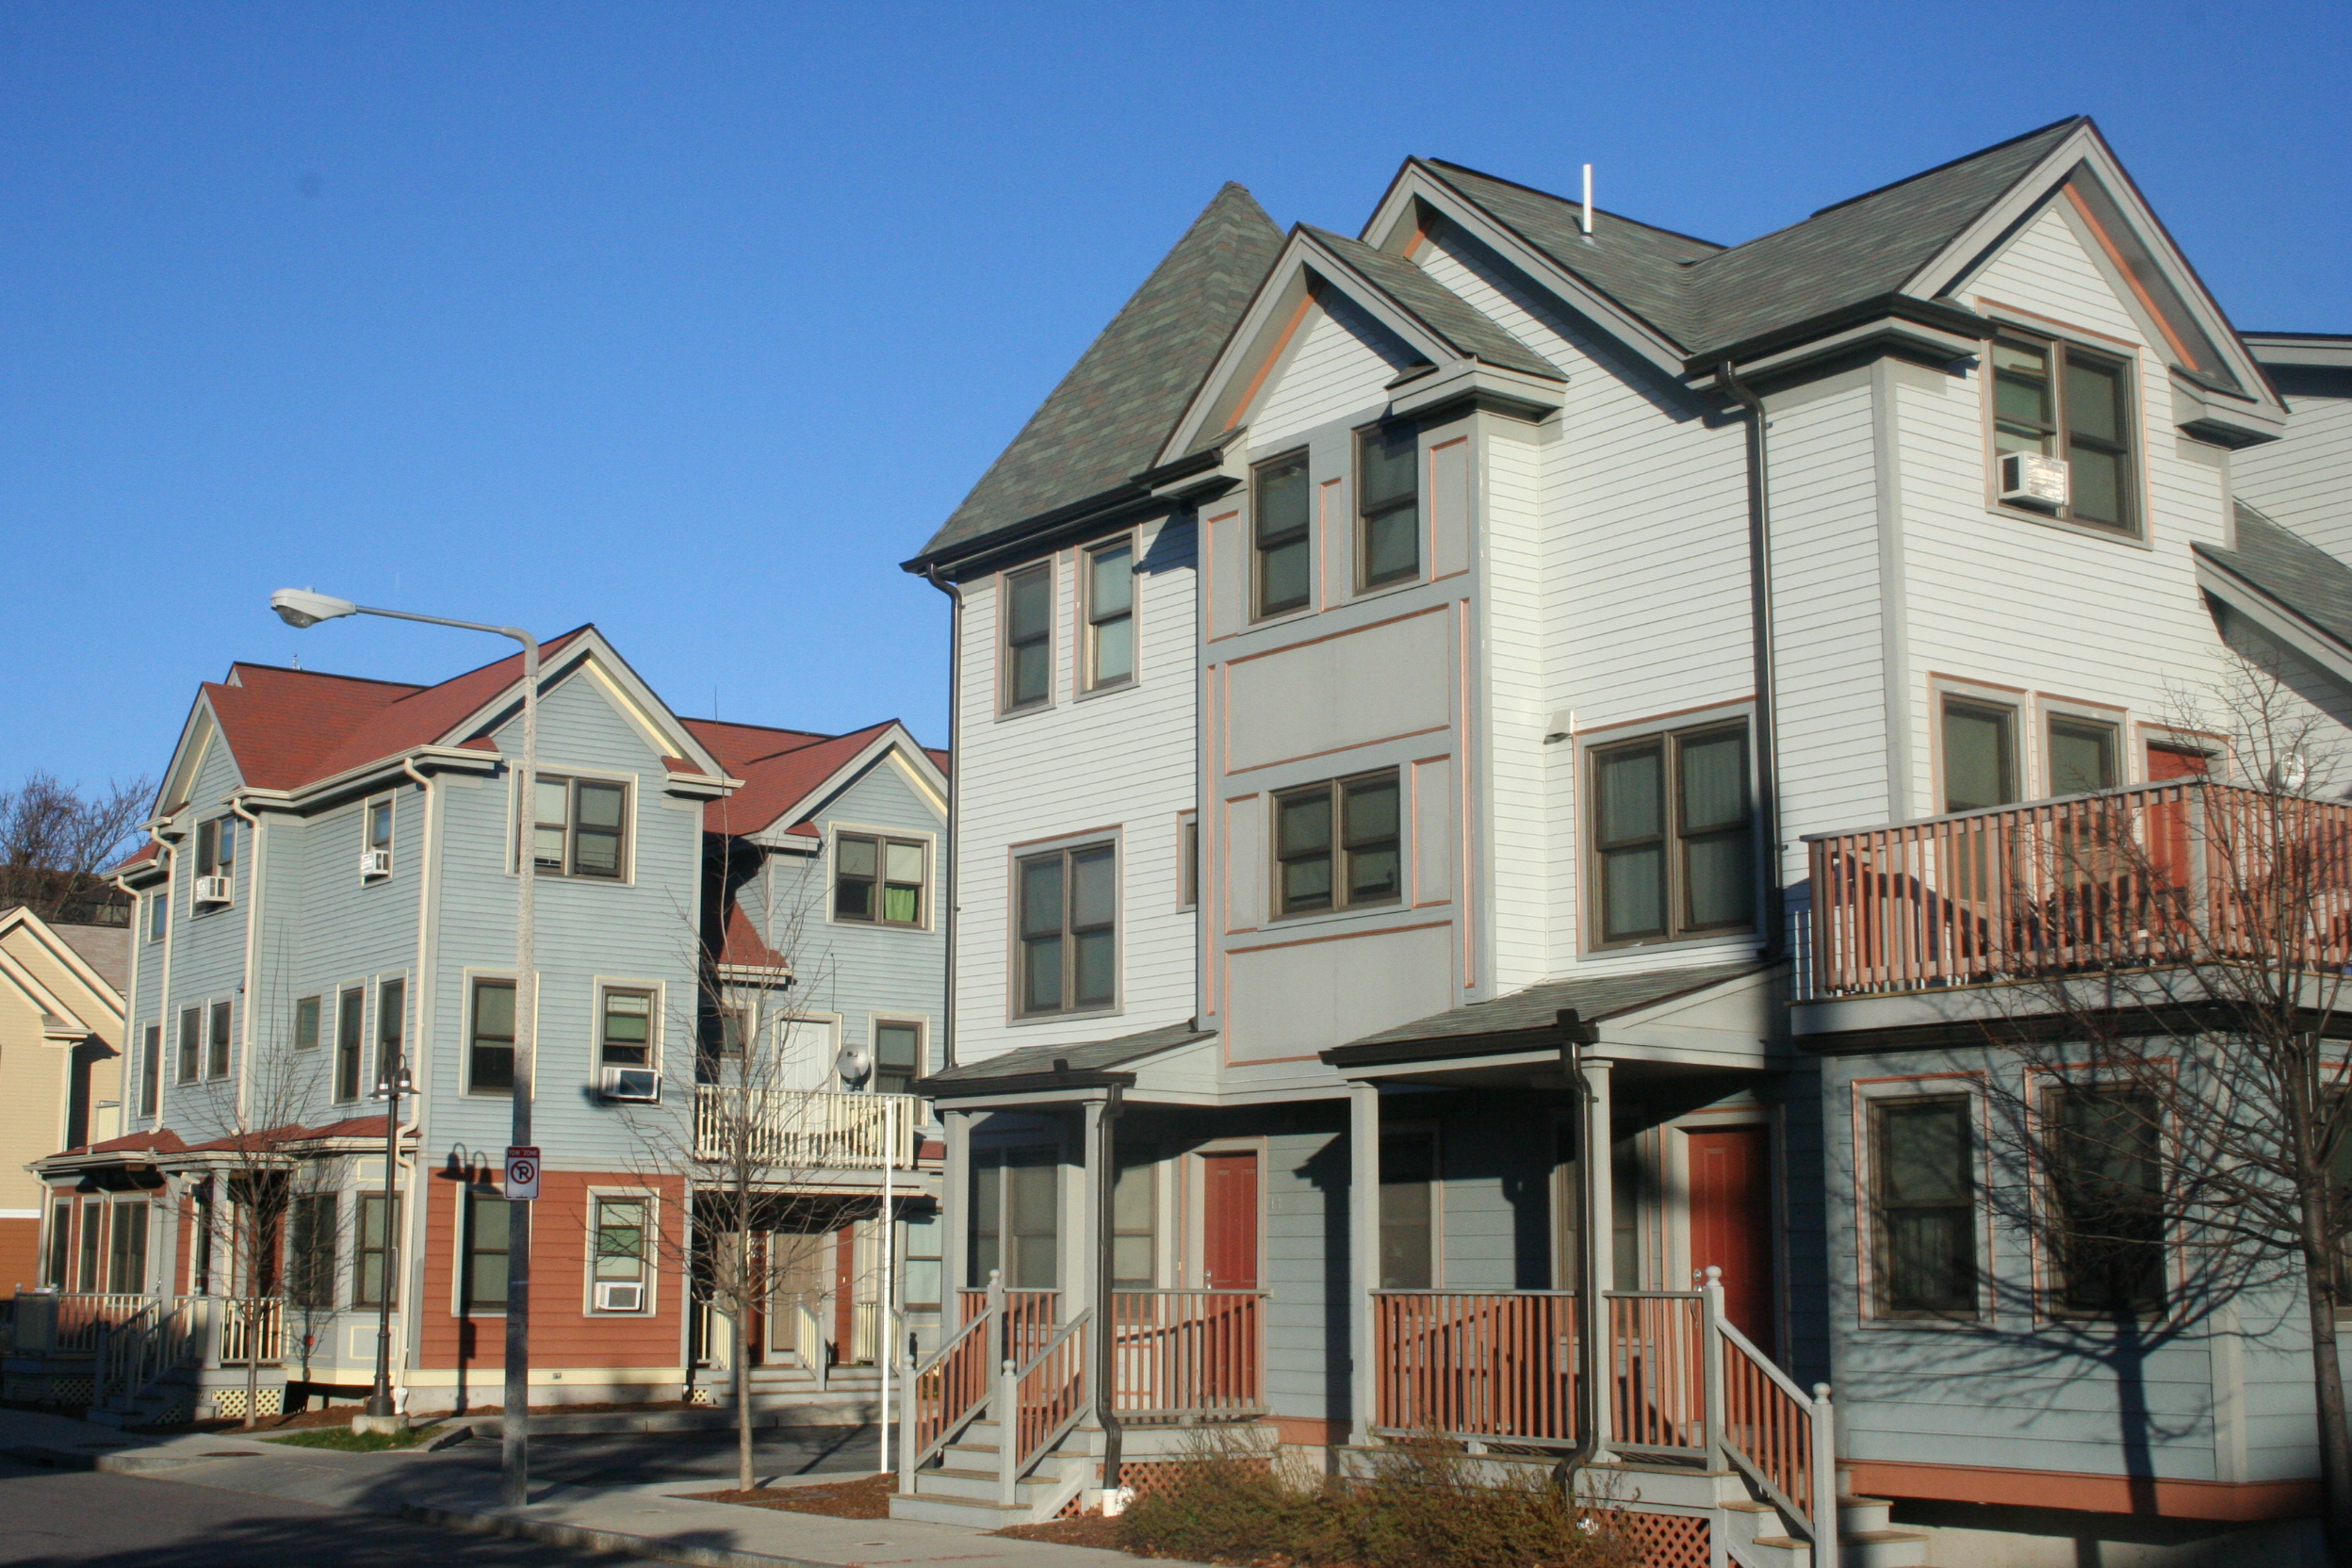 Affordable housing and senior communities lawrence j rowe Afordable house